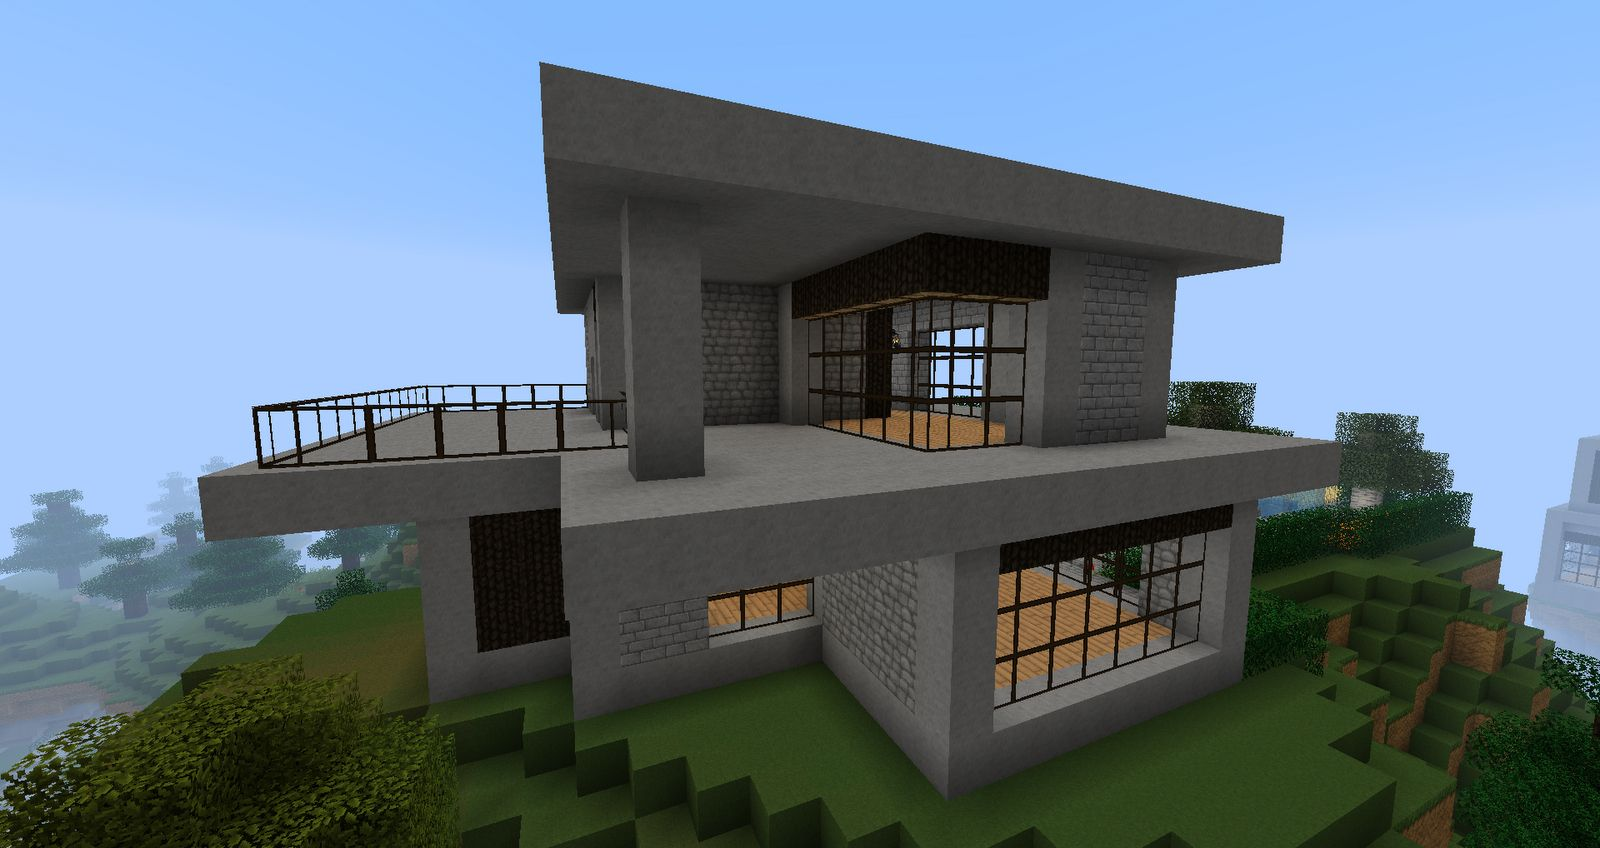 Cool minecraft house | Laughable | Pinterest